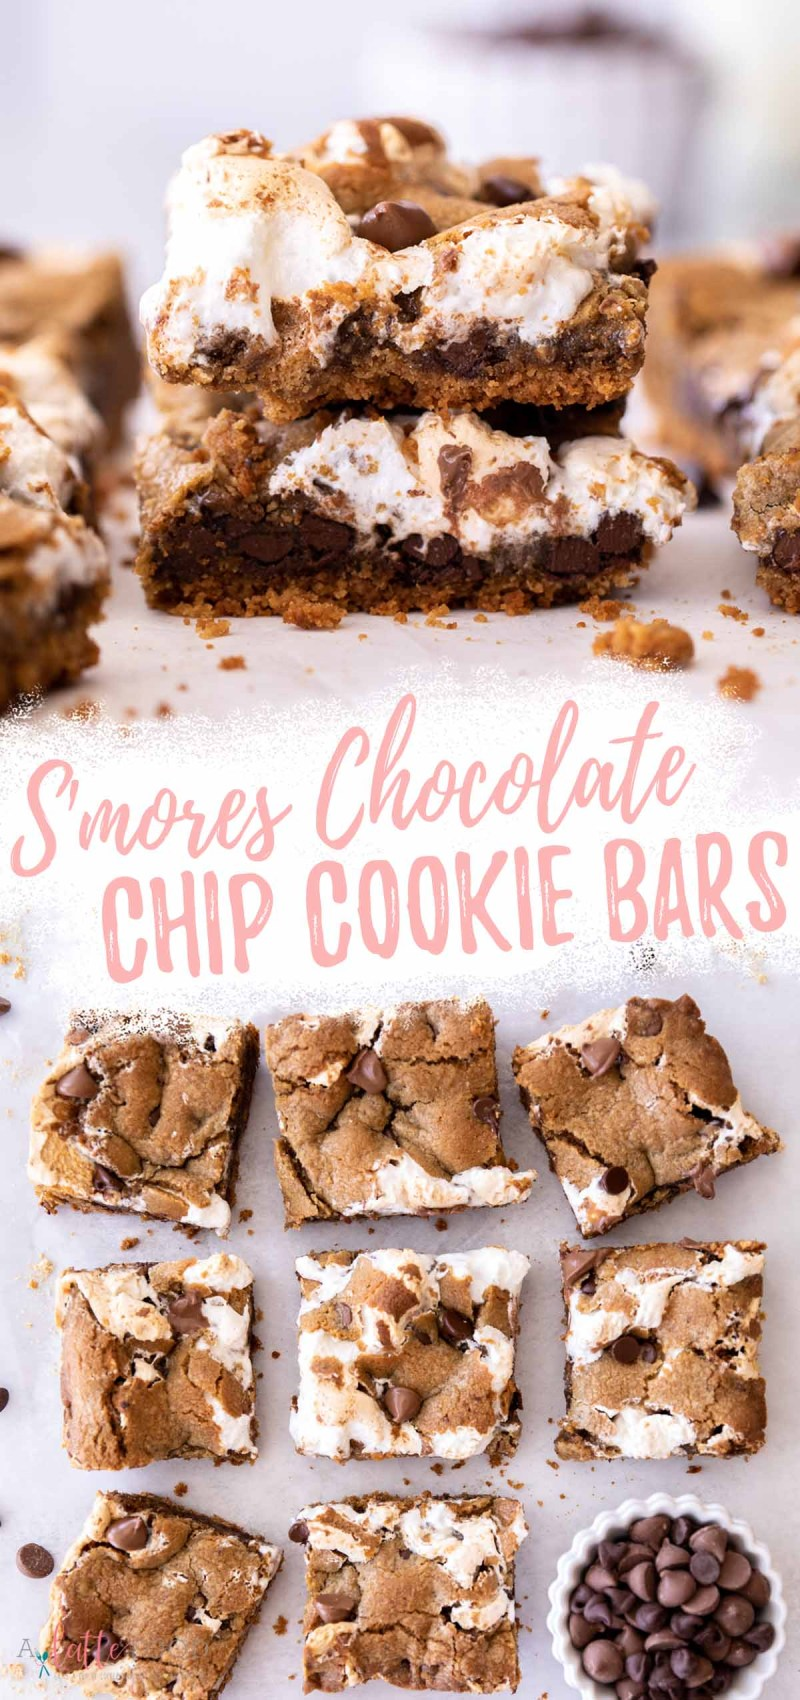 s'mores chocolate chip cookie bars with marshmallow fluff and graham cracker crust on parchment paper